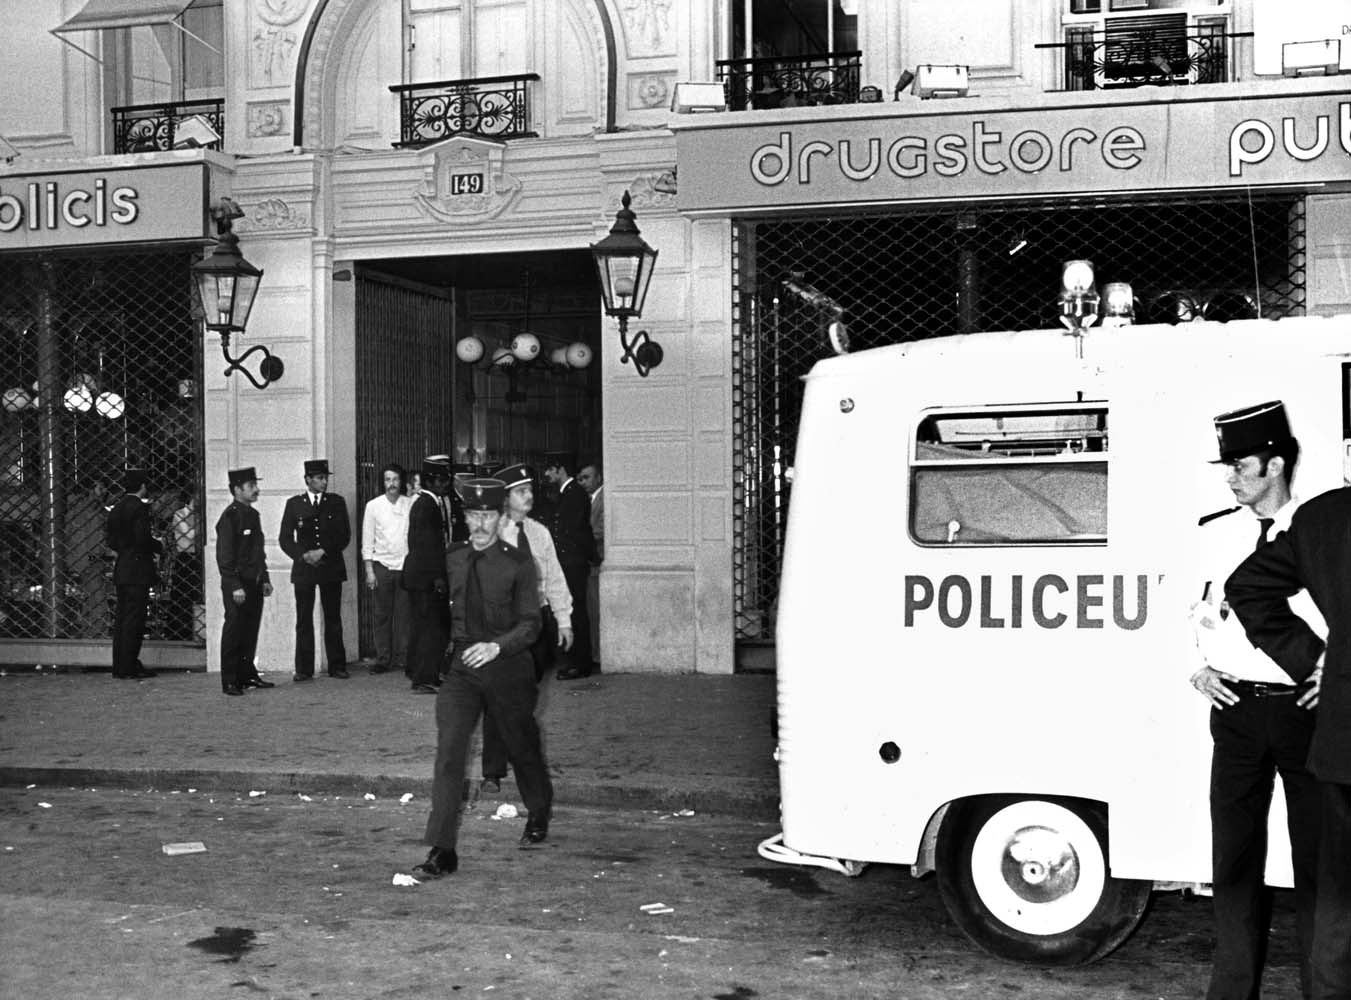 (FILES) This file photo taken on September 15, 1974 in Paris shows policemen working after the deadly bombing at Publicis shop. Paris prosecution requested on March 27, 2017 life imprisonment for Ilich Ramirez Sanchez, aka Carlos for the deadly bombing at Publicis Paris shop more than 40 years ago. / AFP PHOTO / AFP ARCHIVES / STF